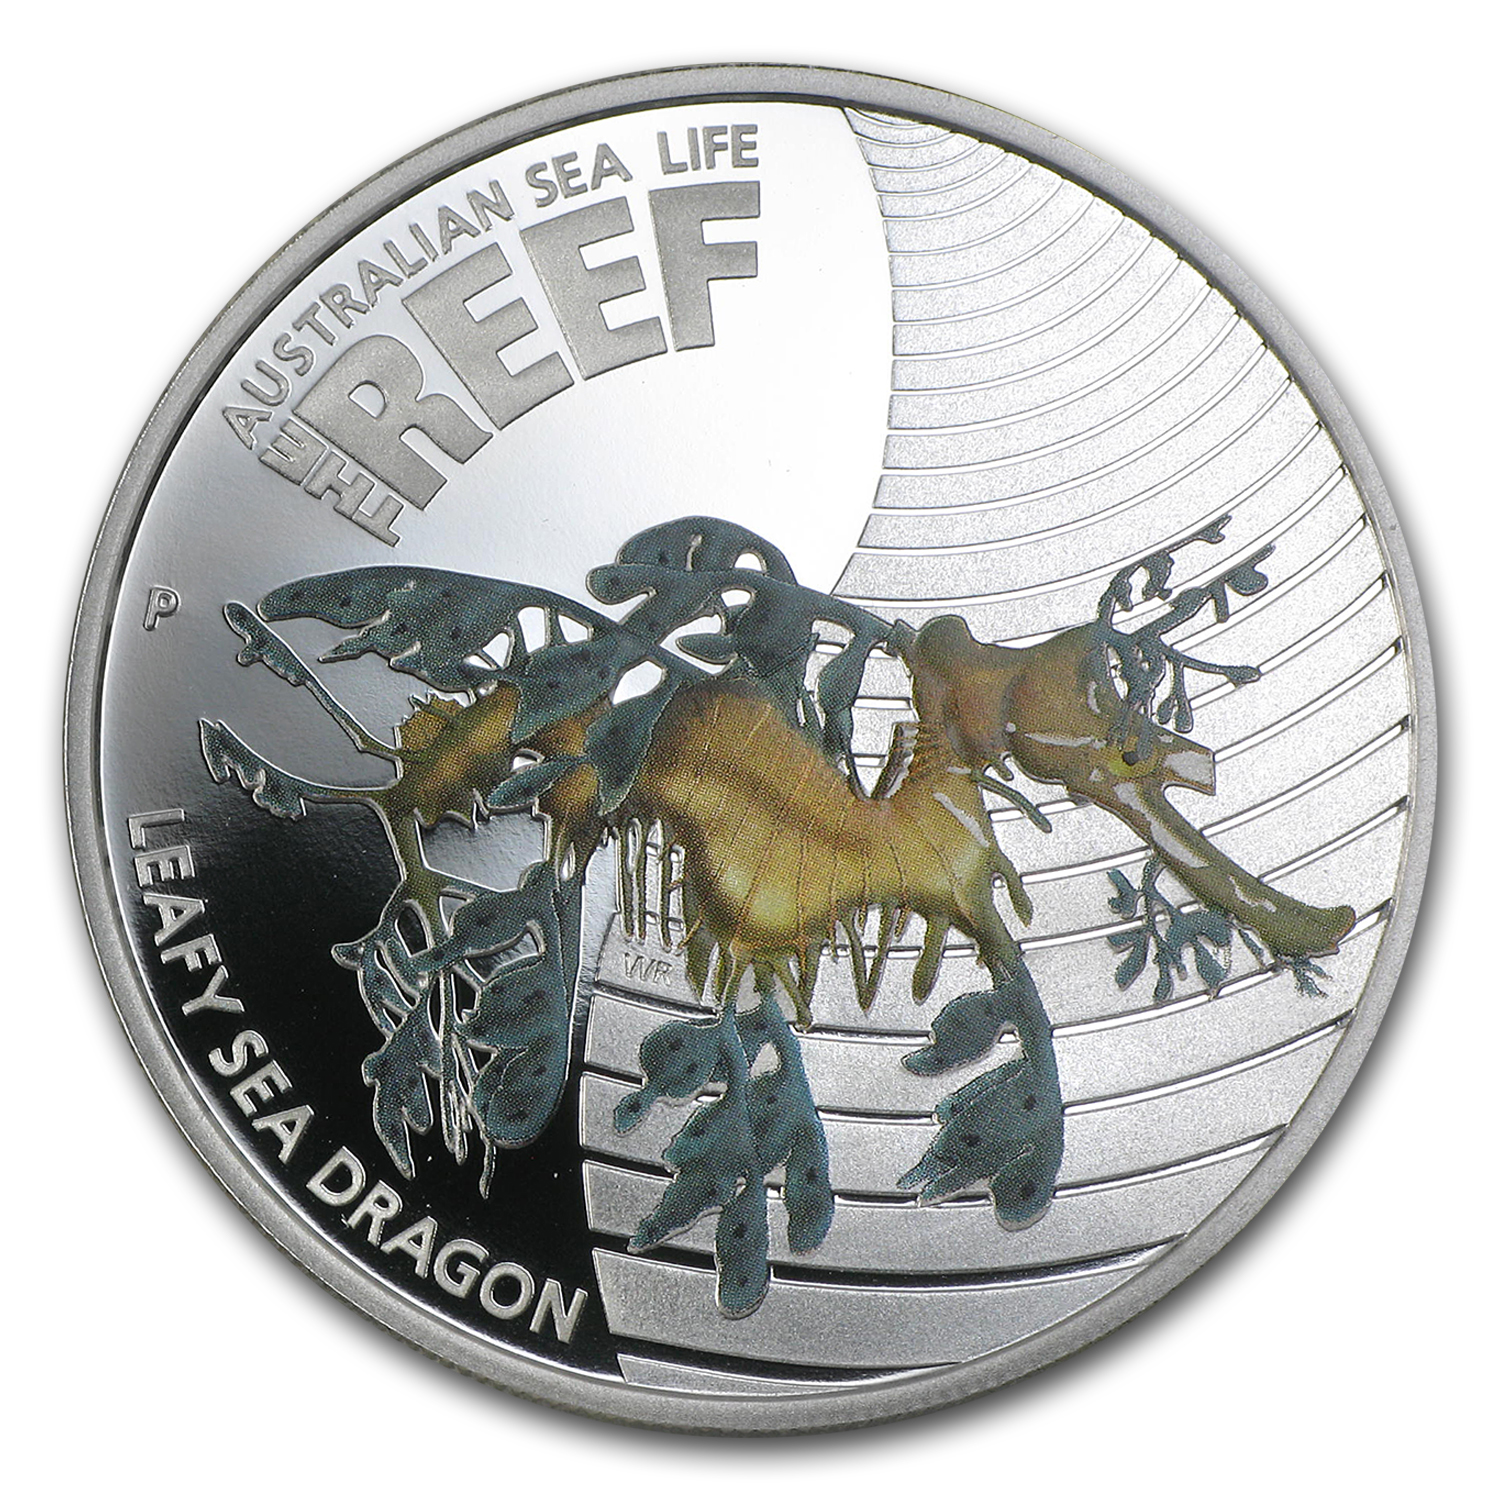 2009 Australia 1/2 oz Silver Leafy Sea Dragon Proof